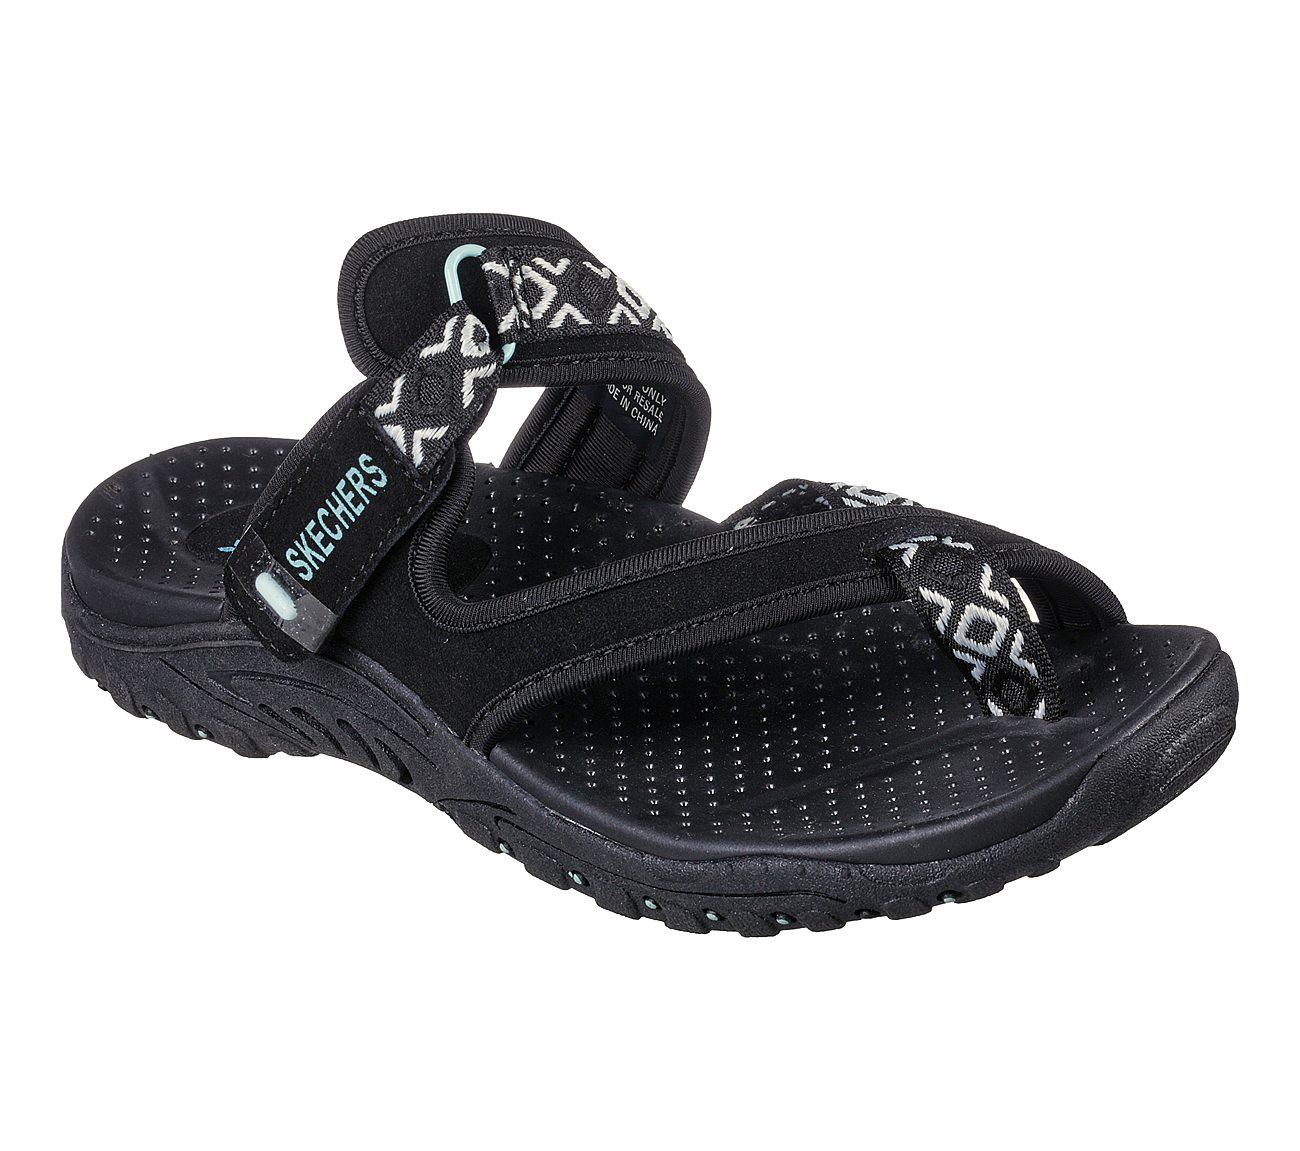 a97bc4e5186 Buy SKECHERS Reggae - Trailway SKECHERS Modern Comfort Shoes only £45.00